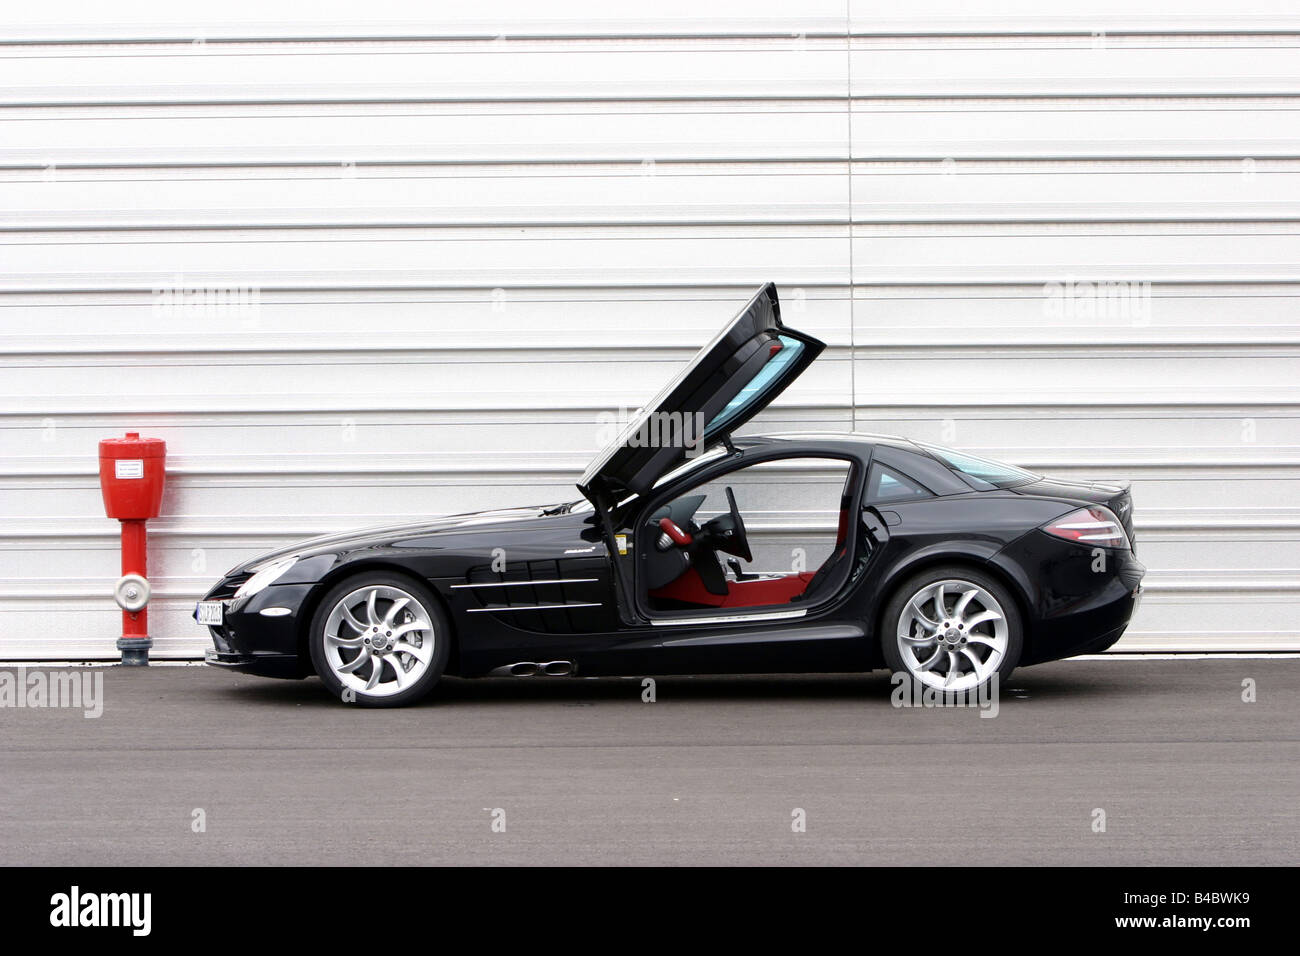 Mercedes Mclaren Slr 2003 Stock Photos Mercedes Mclaren Slr 2003